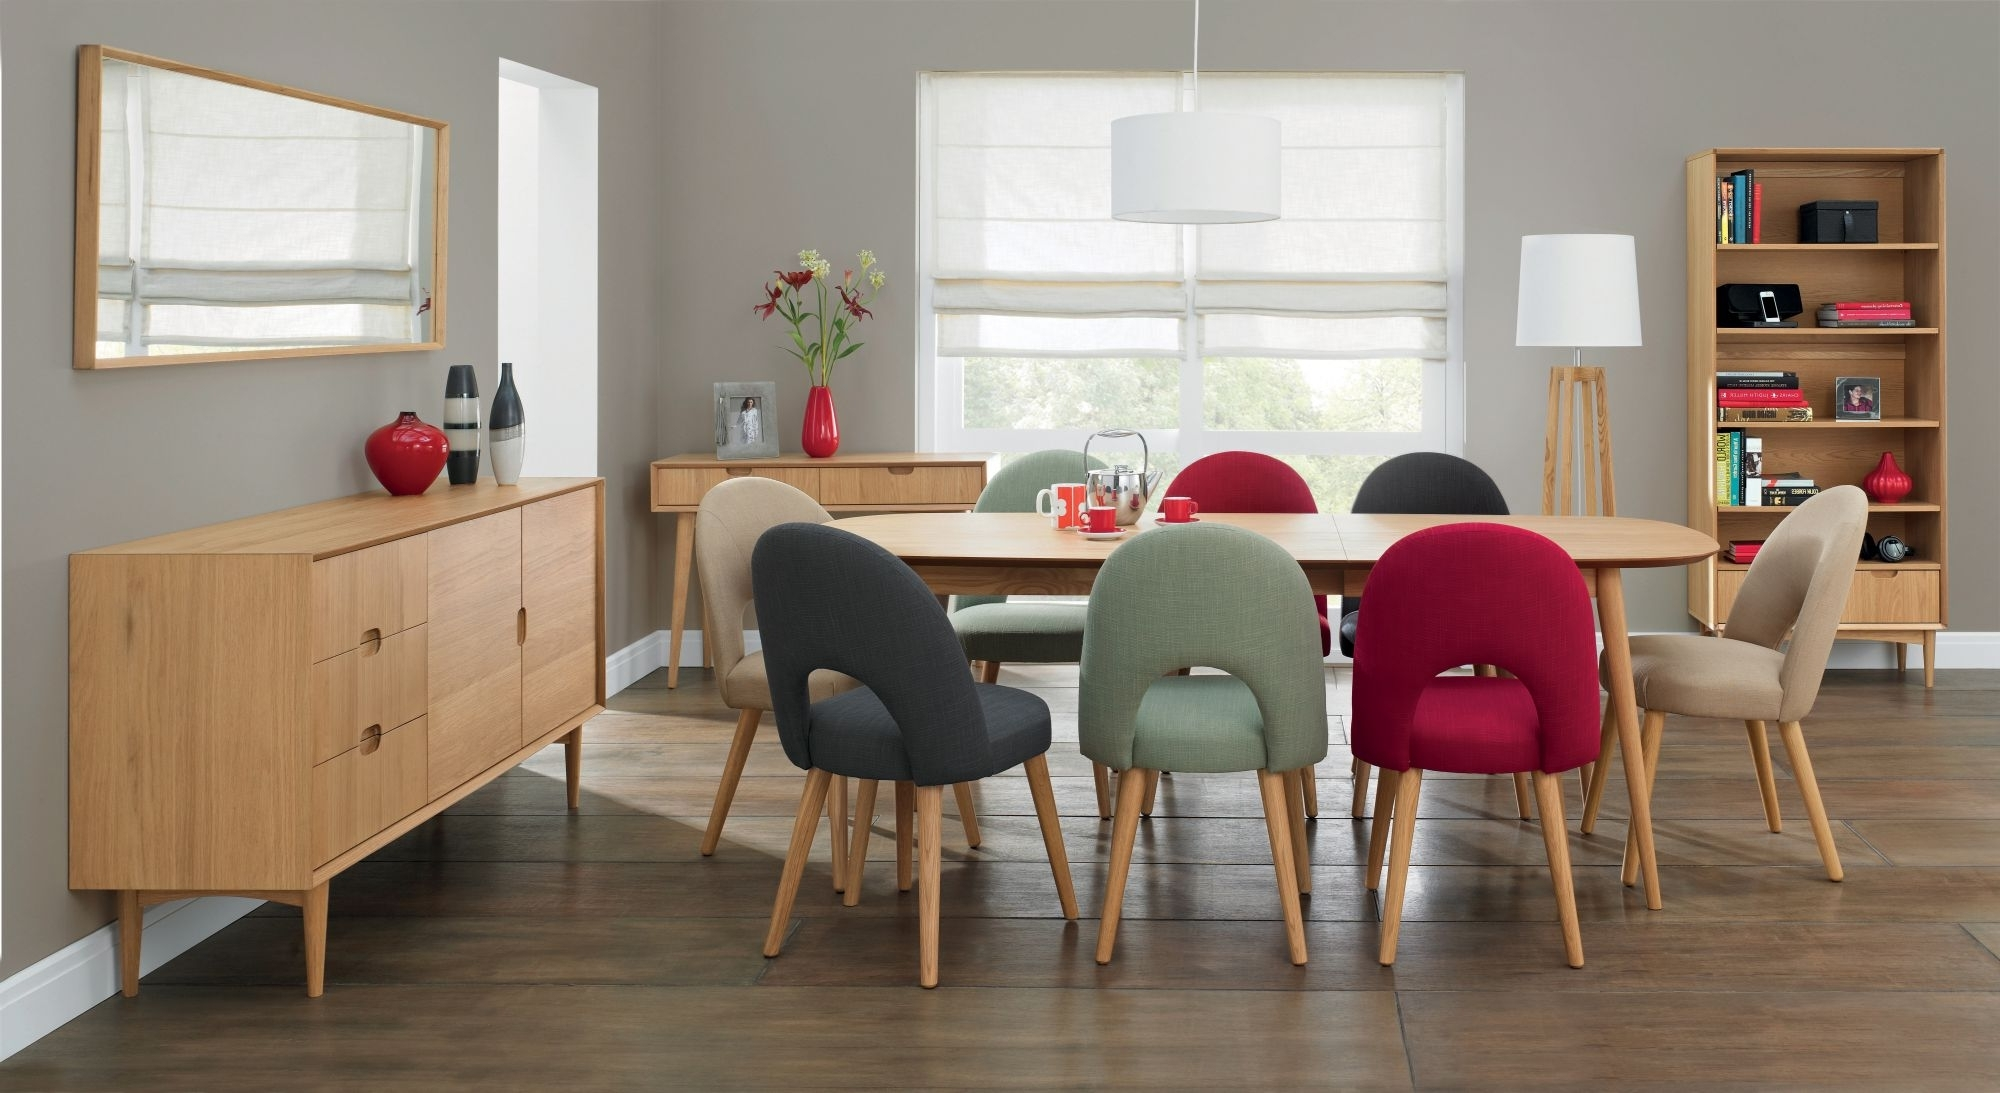 Bentley Designs Oslo Oak 6 Seater Dining Table & 6 Stone Fabric Intended For Trendy Oak 6 Seater Dining Tables (View 3 of 25)